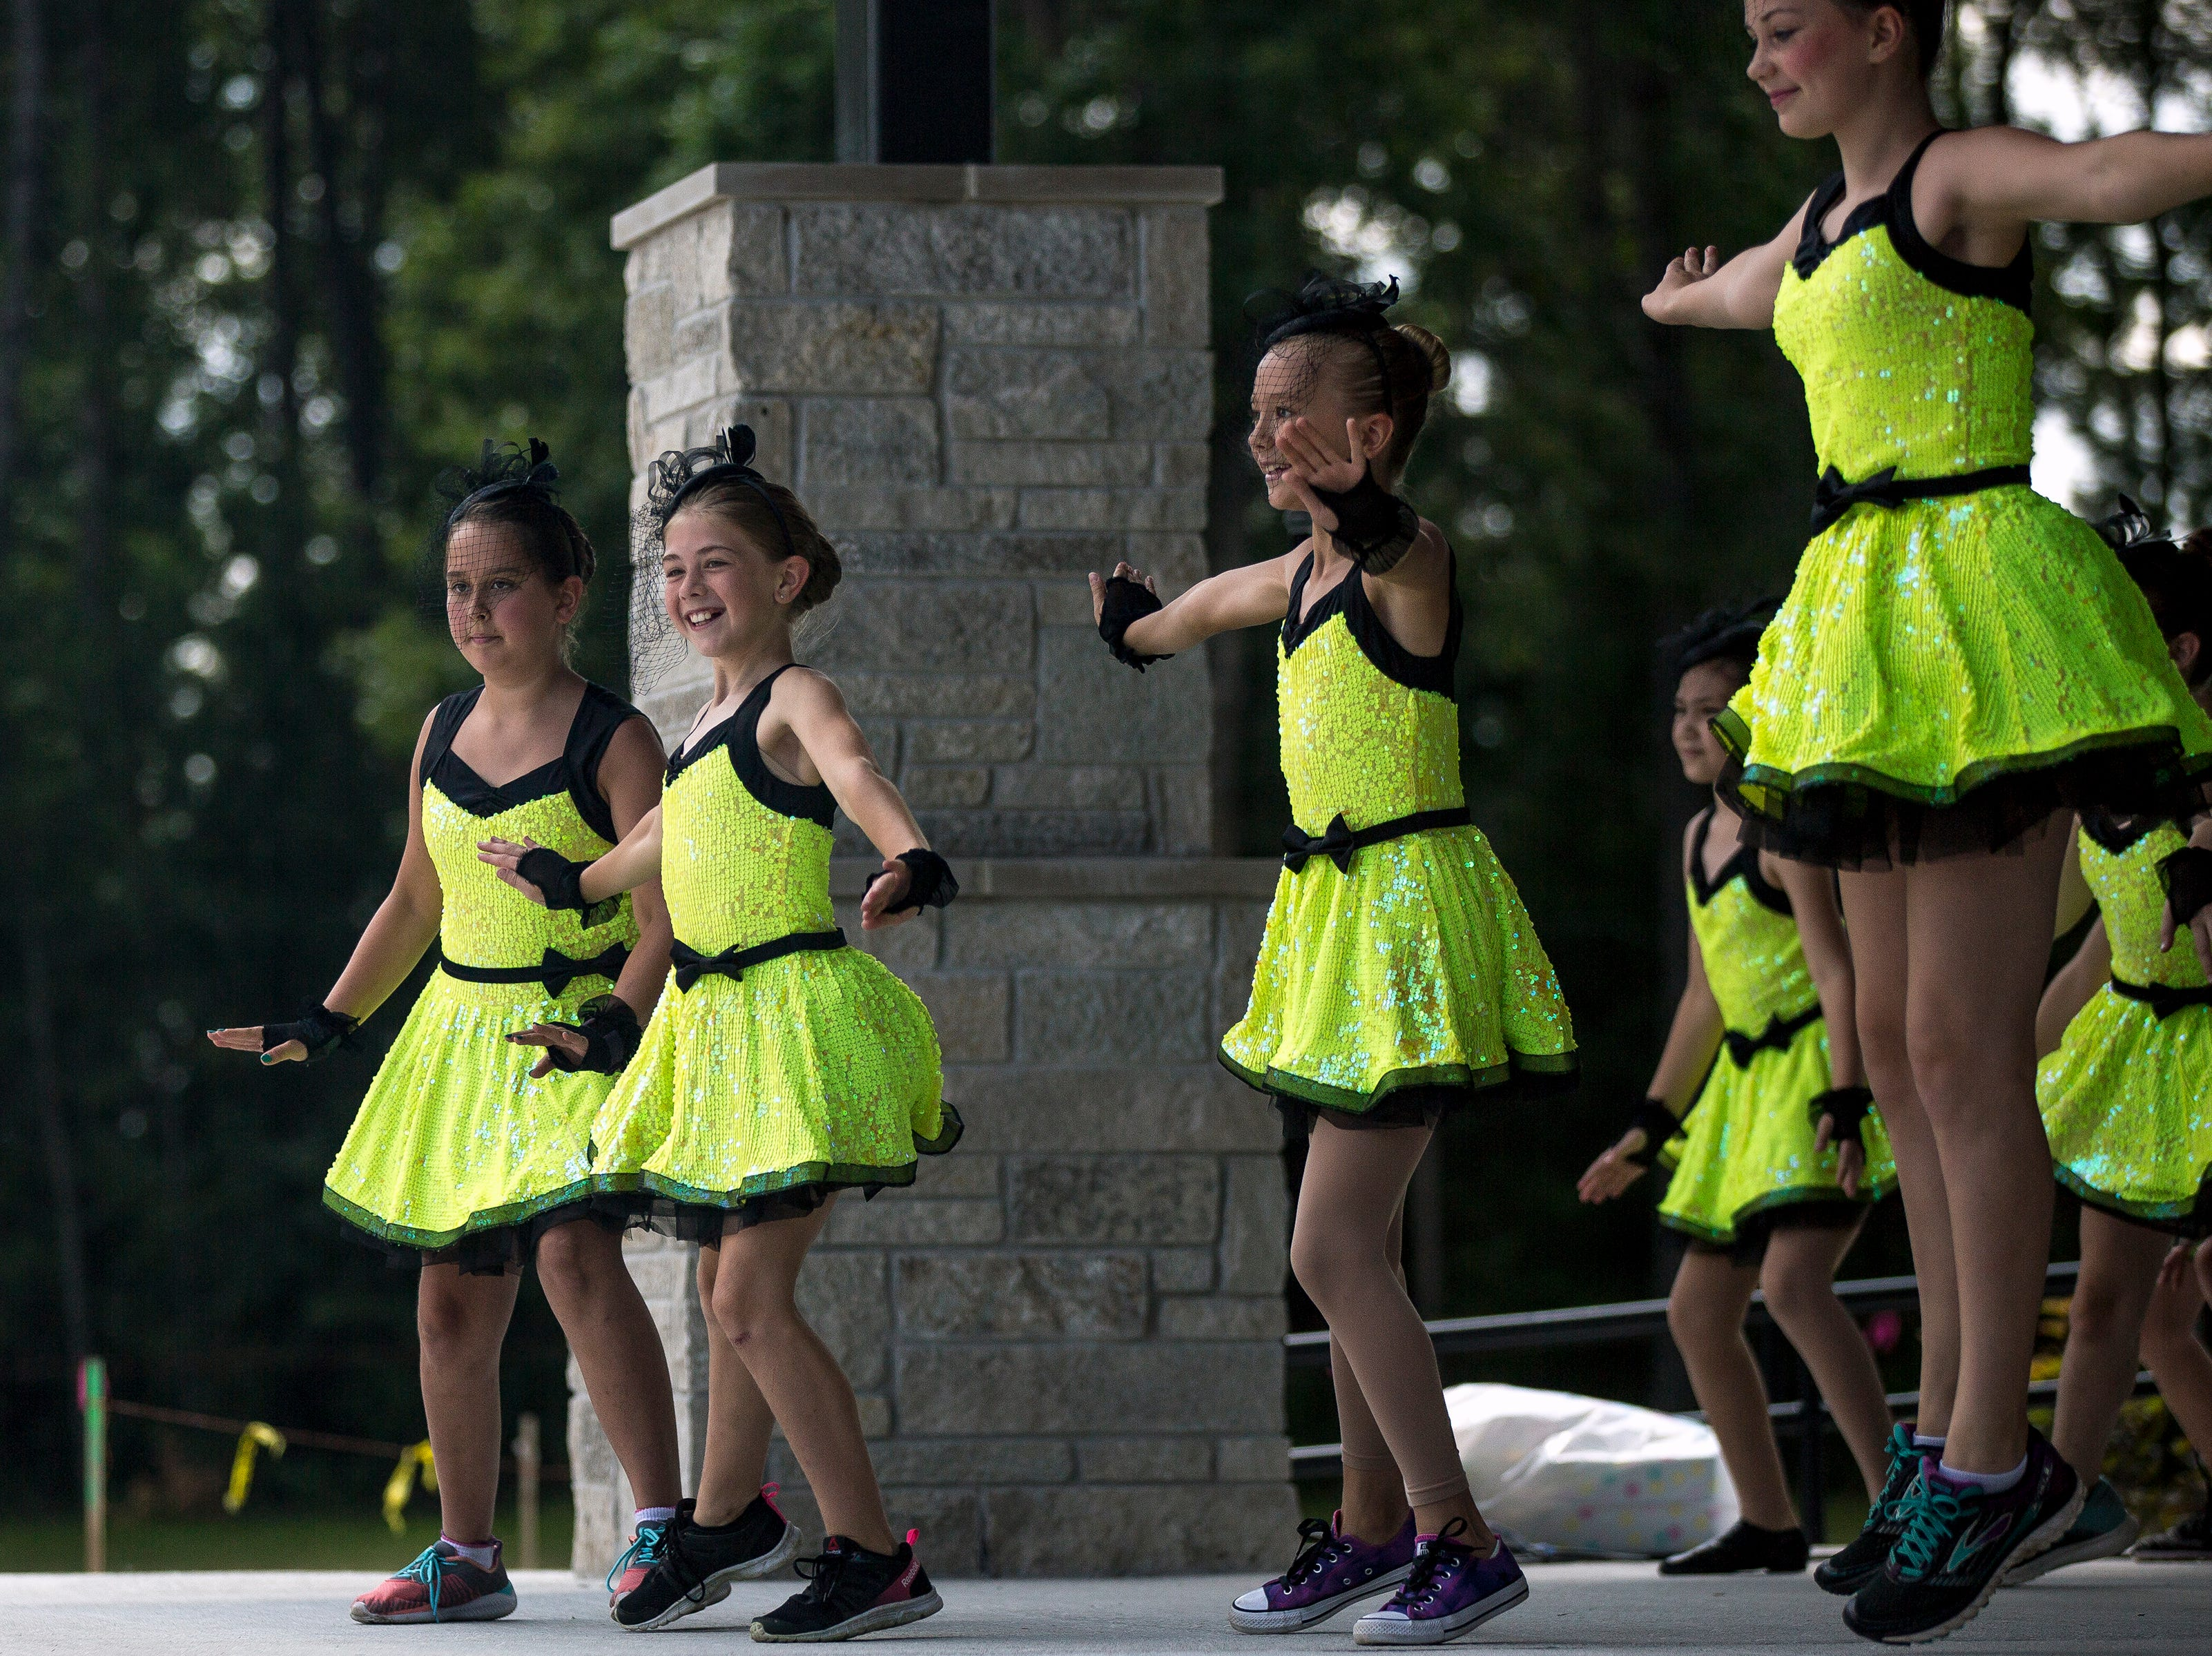 Dancers from Dance Dynamics perform during Celebrate Plover at Lake Pacawa Park in Plover, Wis., July 28, 2018.